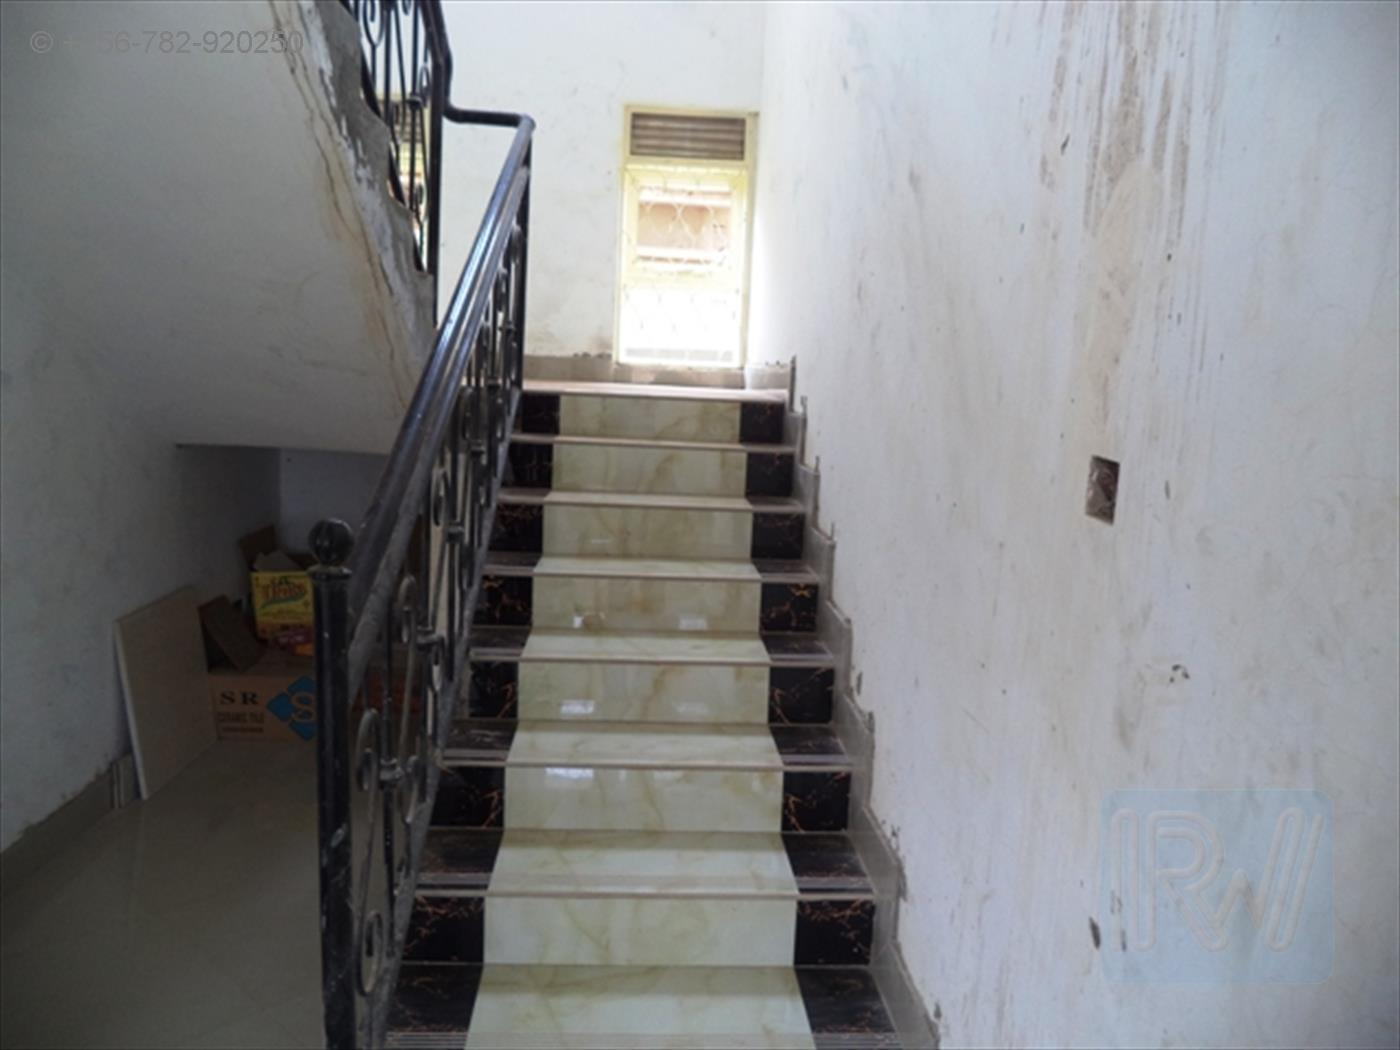 Staicase (Stairway)